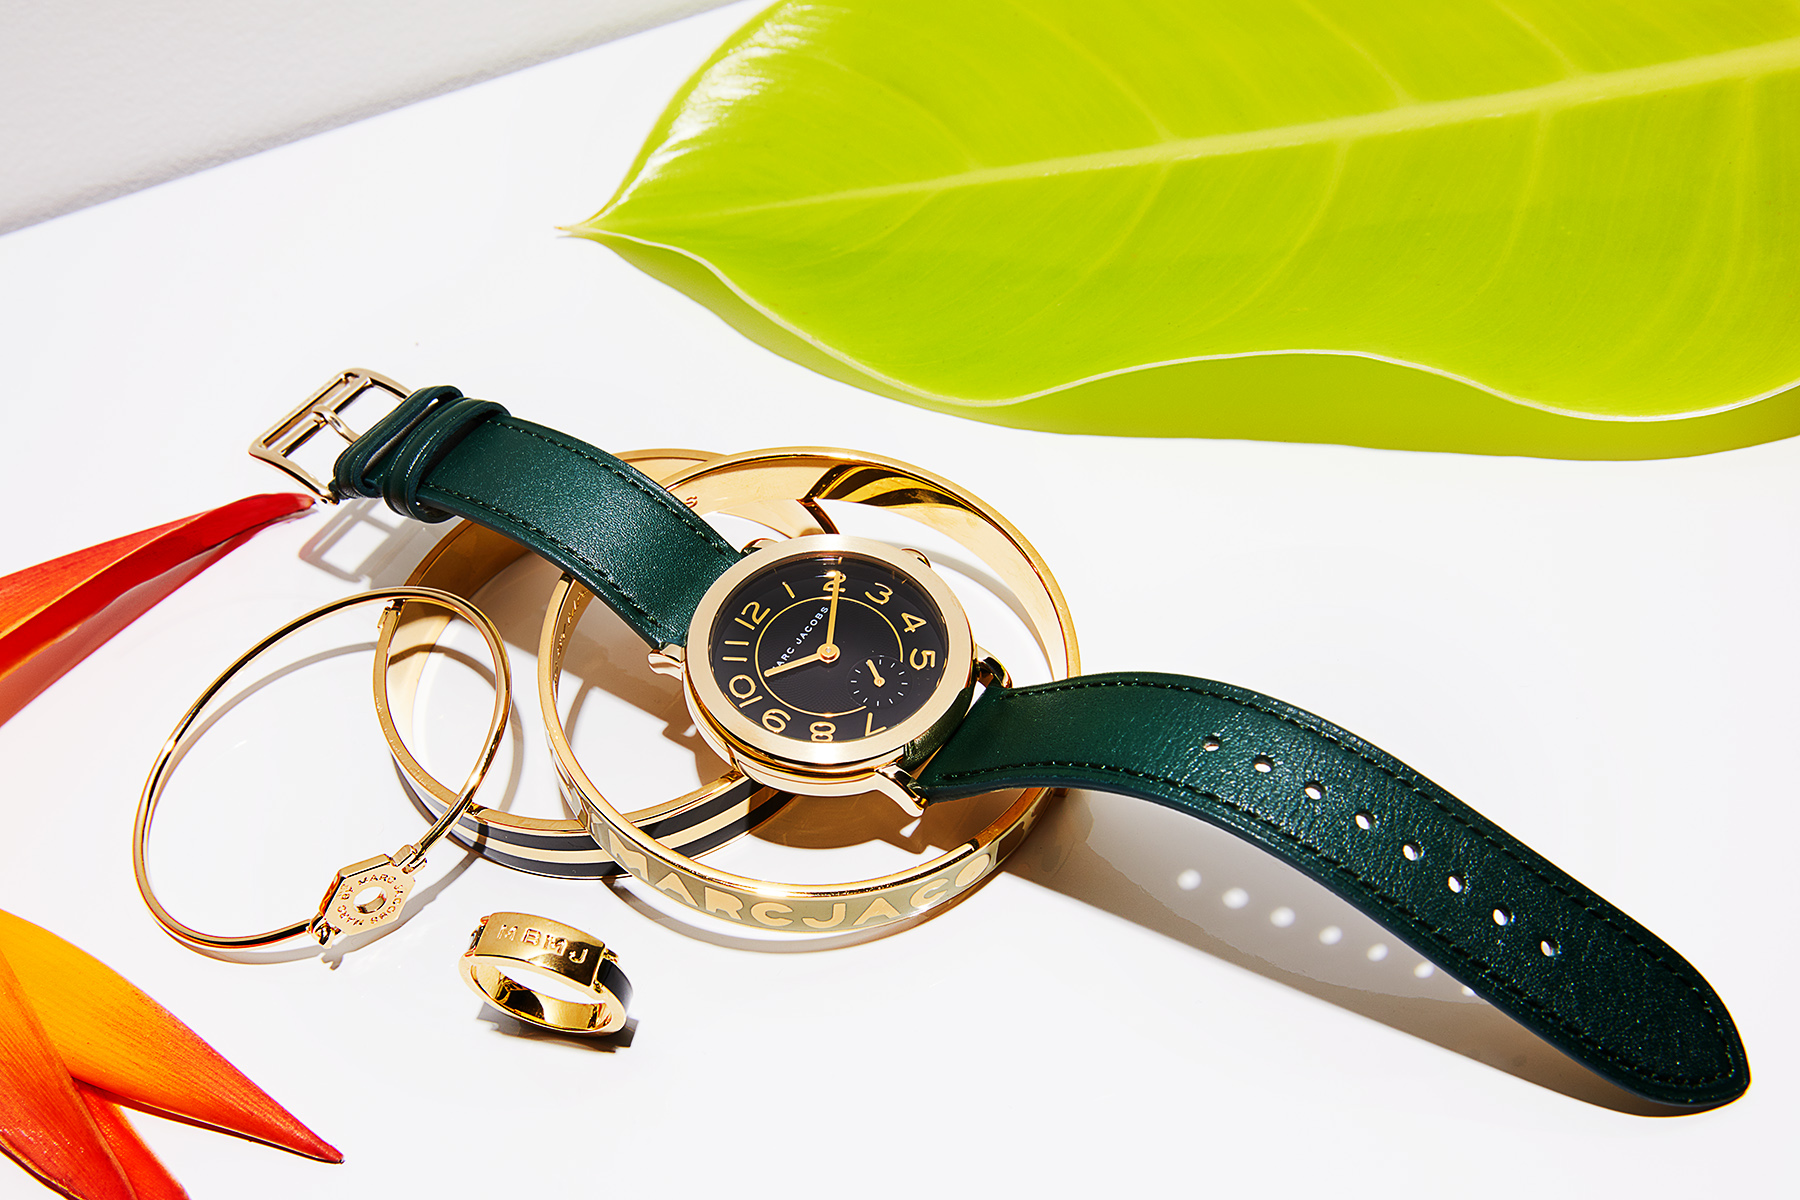 retouch_reference_comp_Marc_Jacobs_Jewelry_Watches_1182773412_WACC_STILL_EDITORIAL_014.jpg